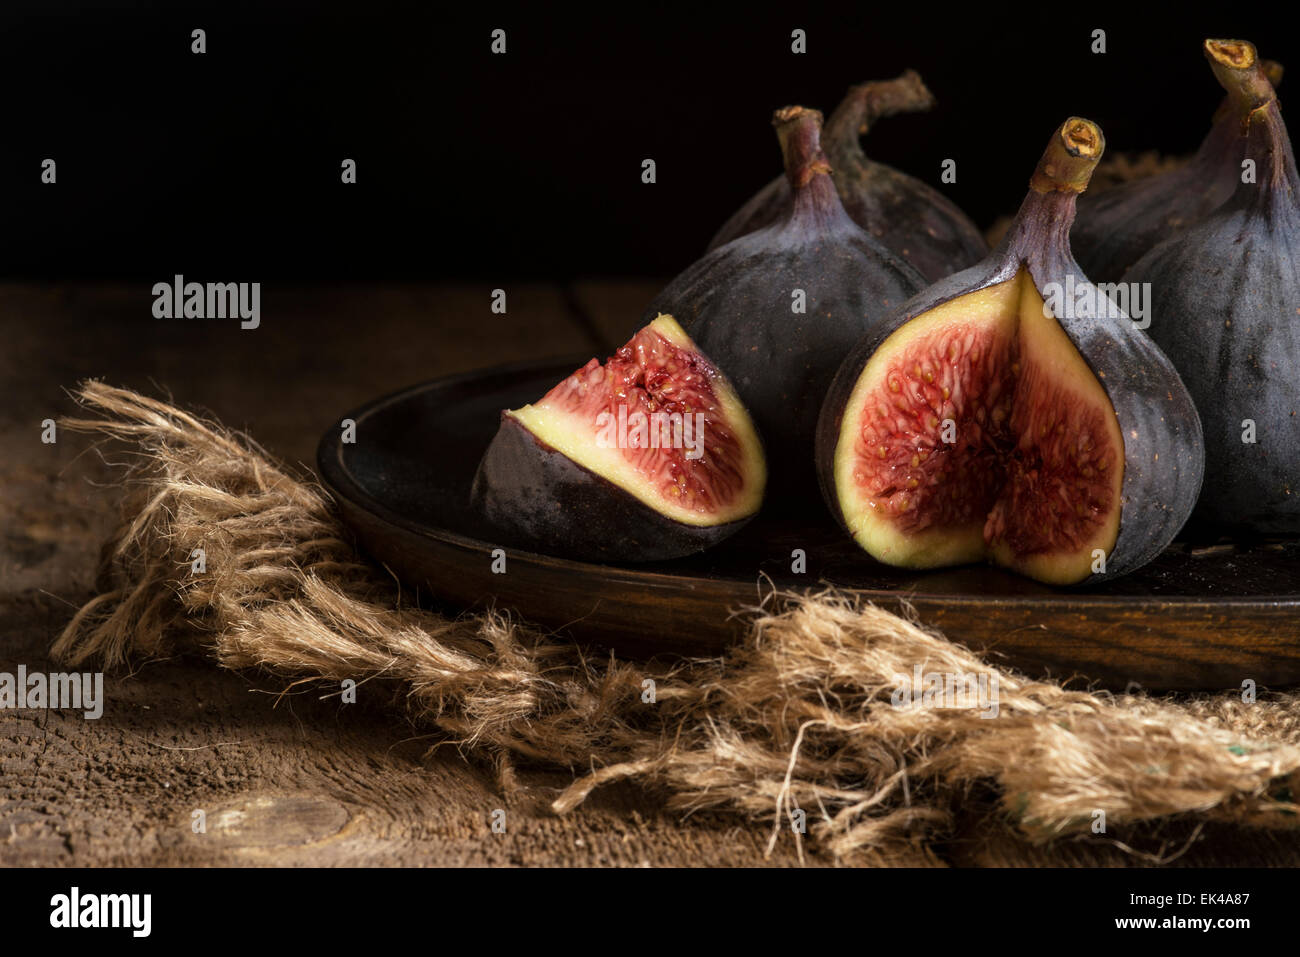 Fresh figs in moody natural lighting set with vintage style - Stock Image